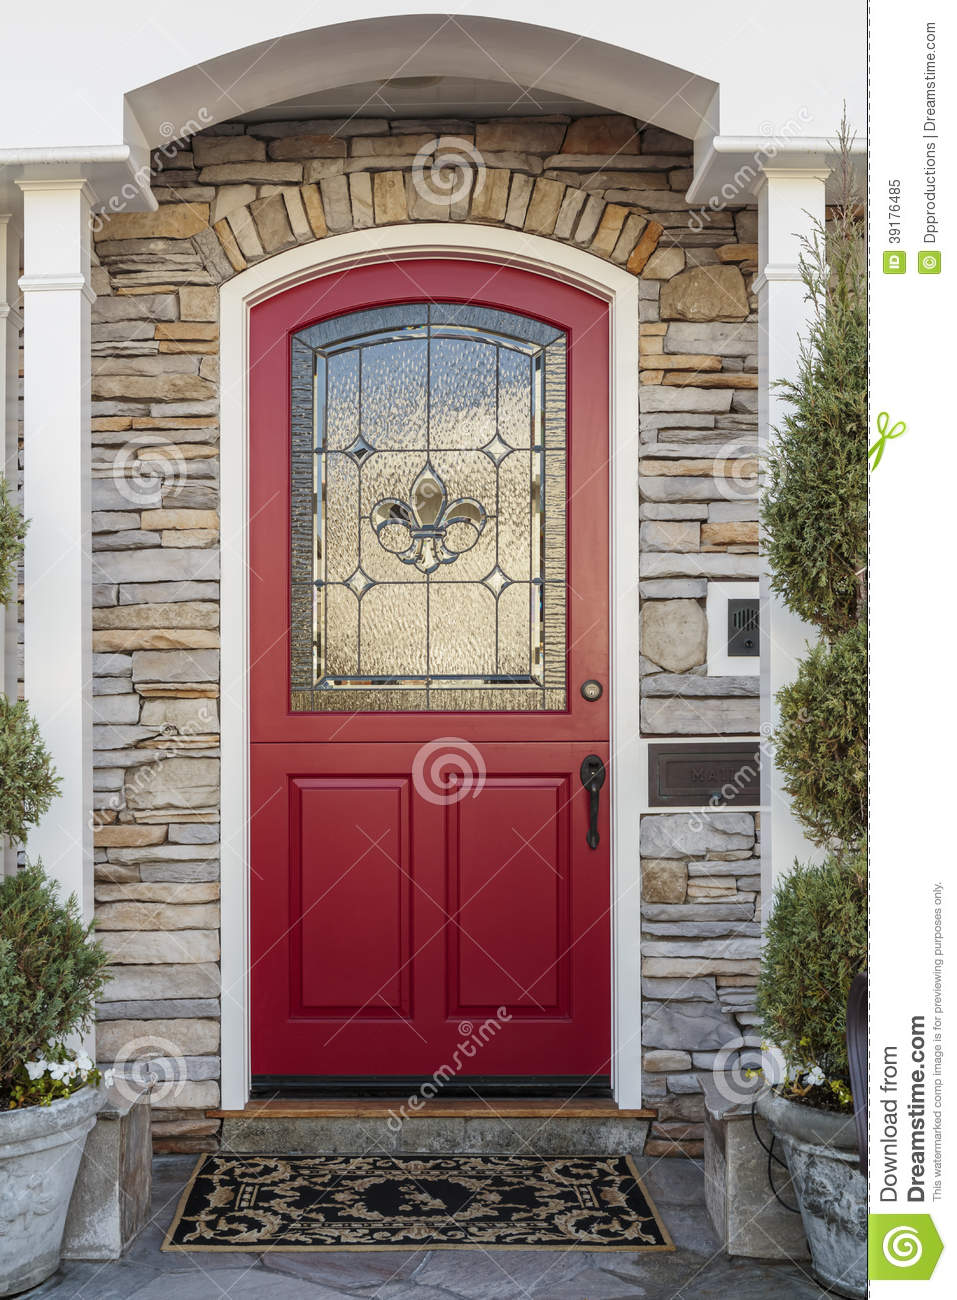 Red Doors Stone : Ornate red front door of a home stock image